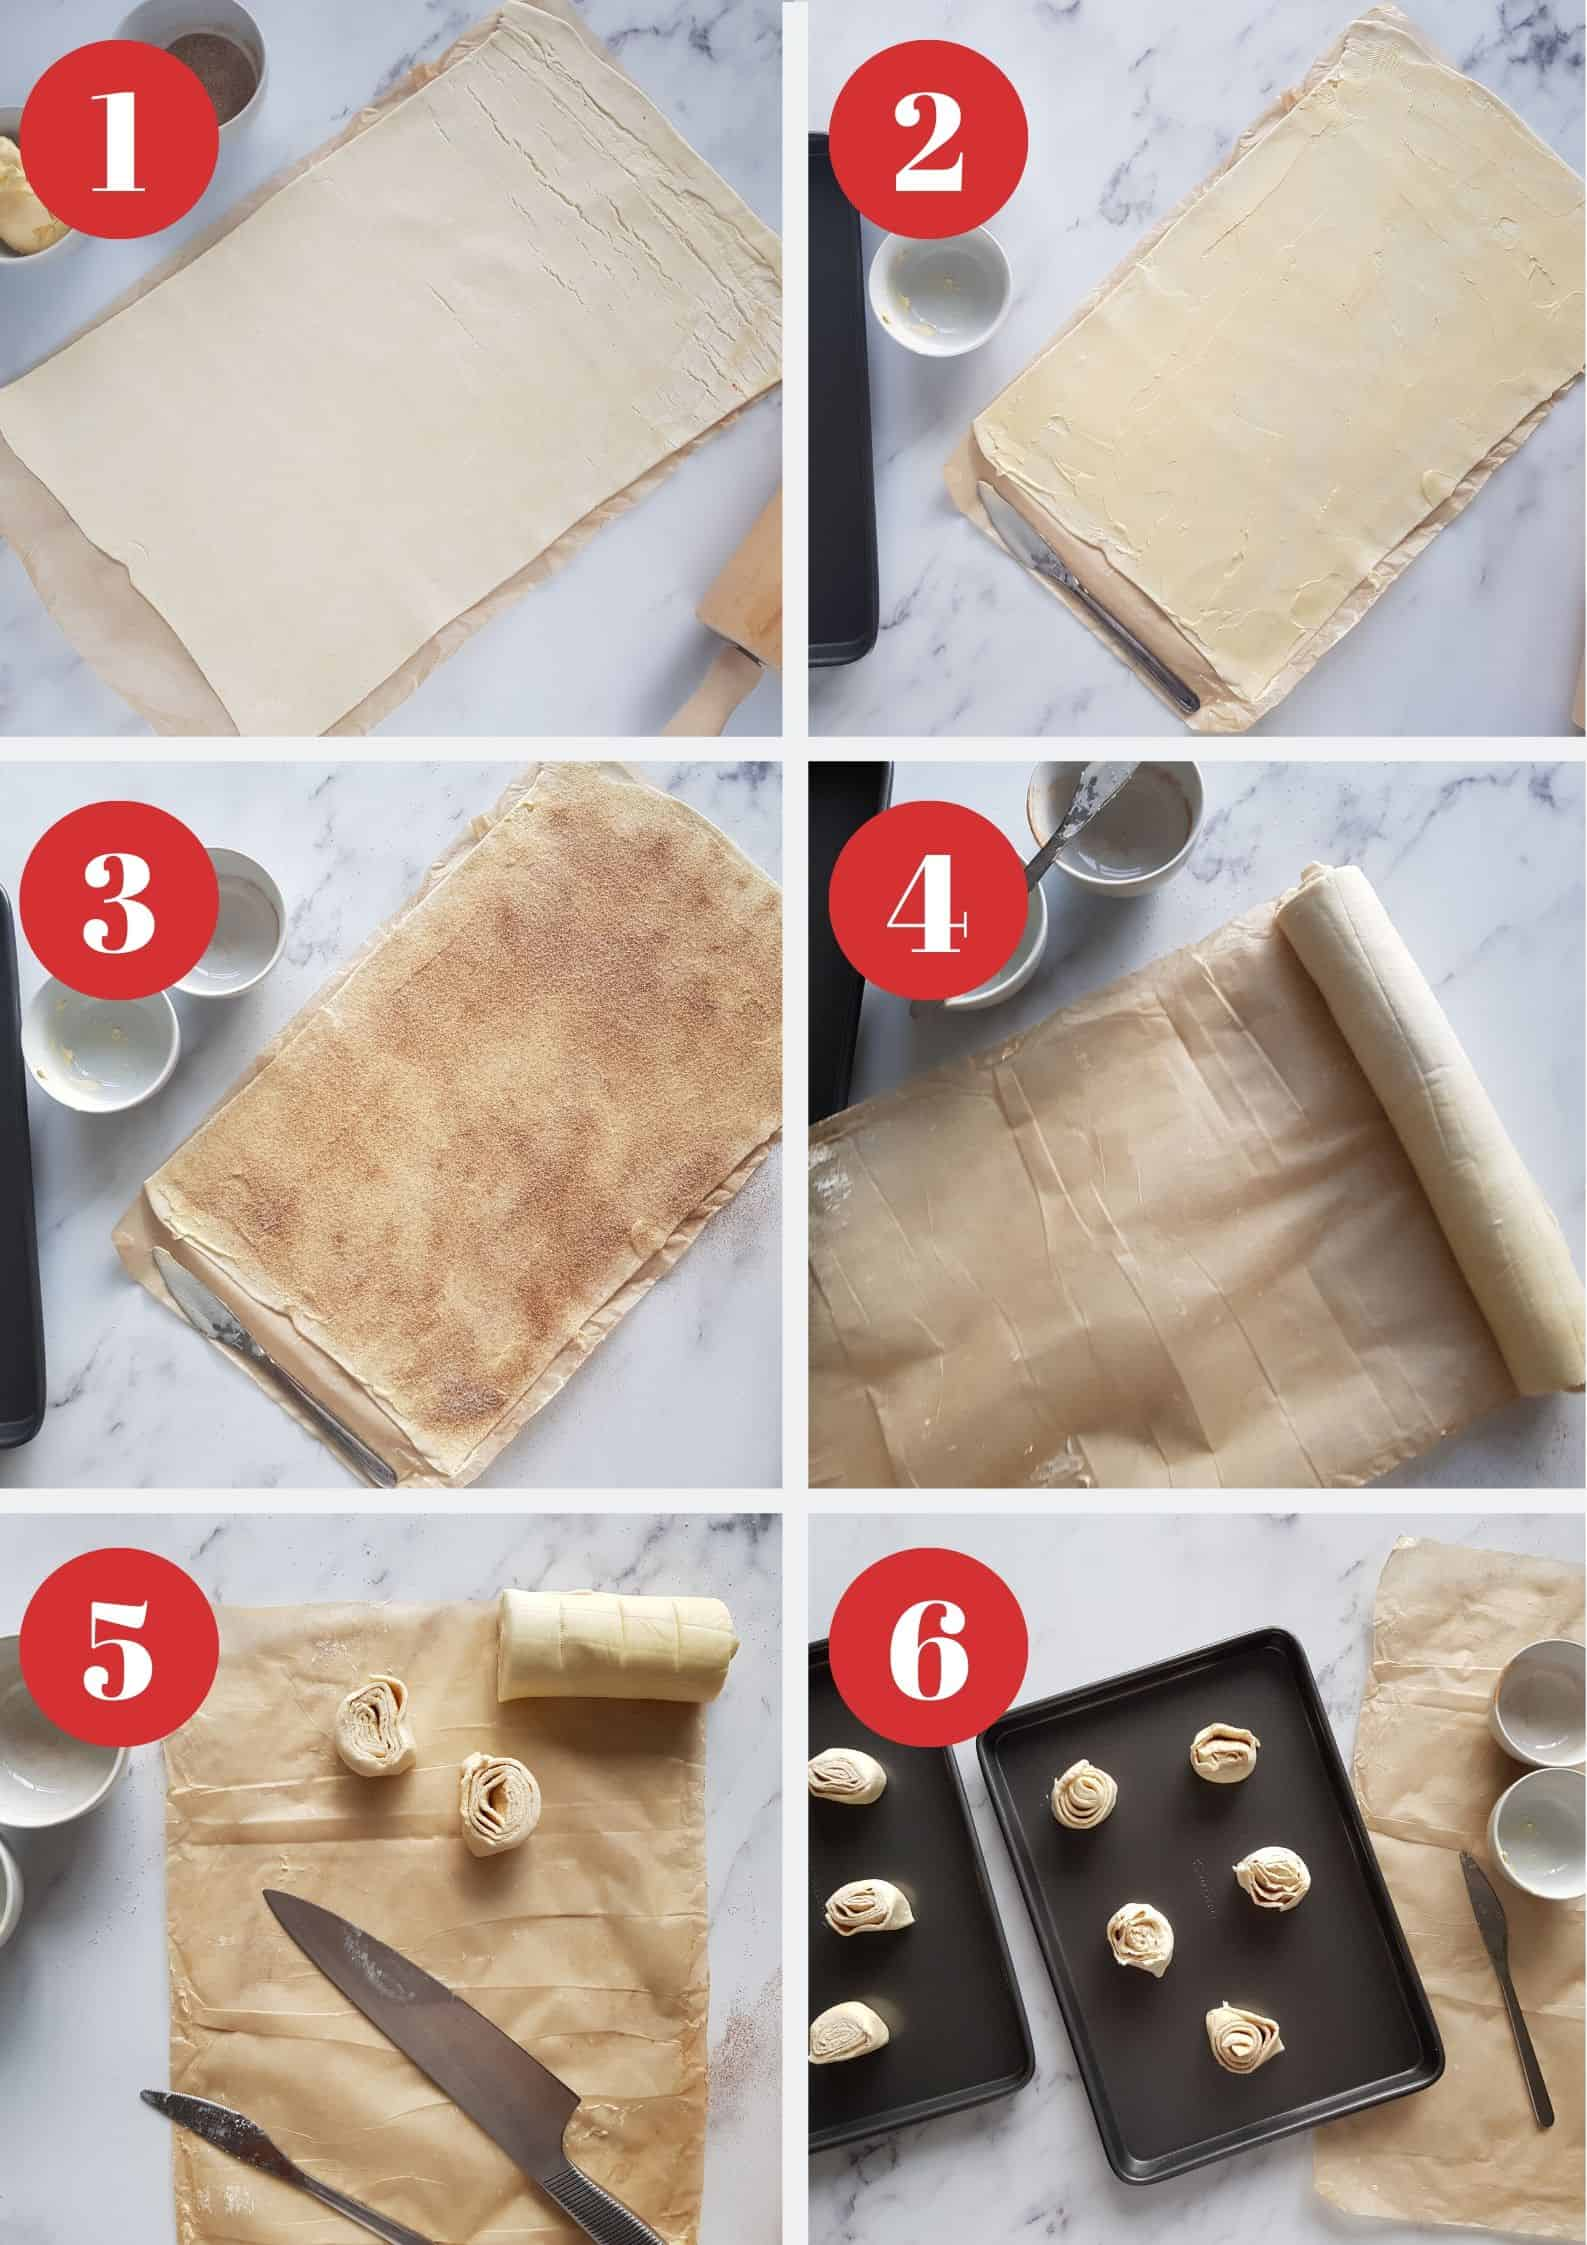 Infographic showing how to make puff pastry cinnamon rolls.